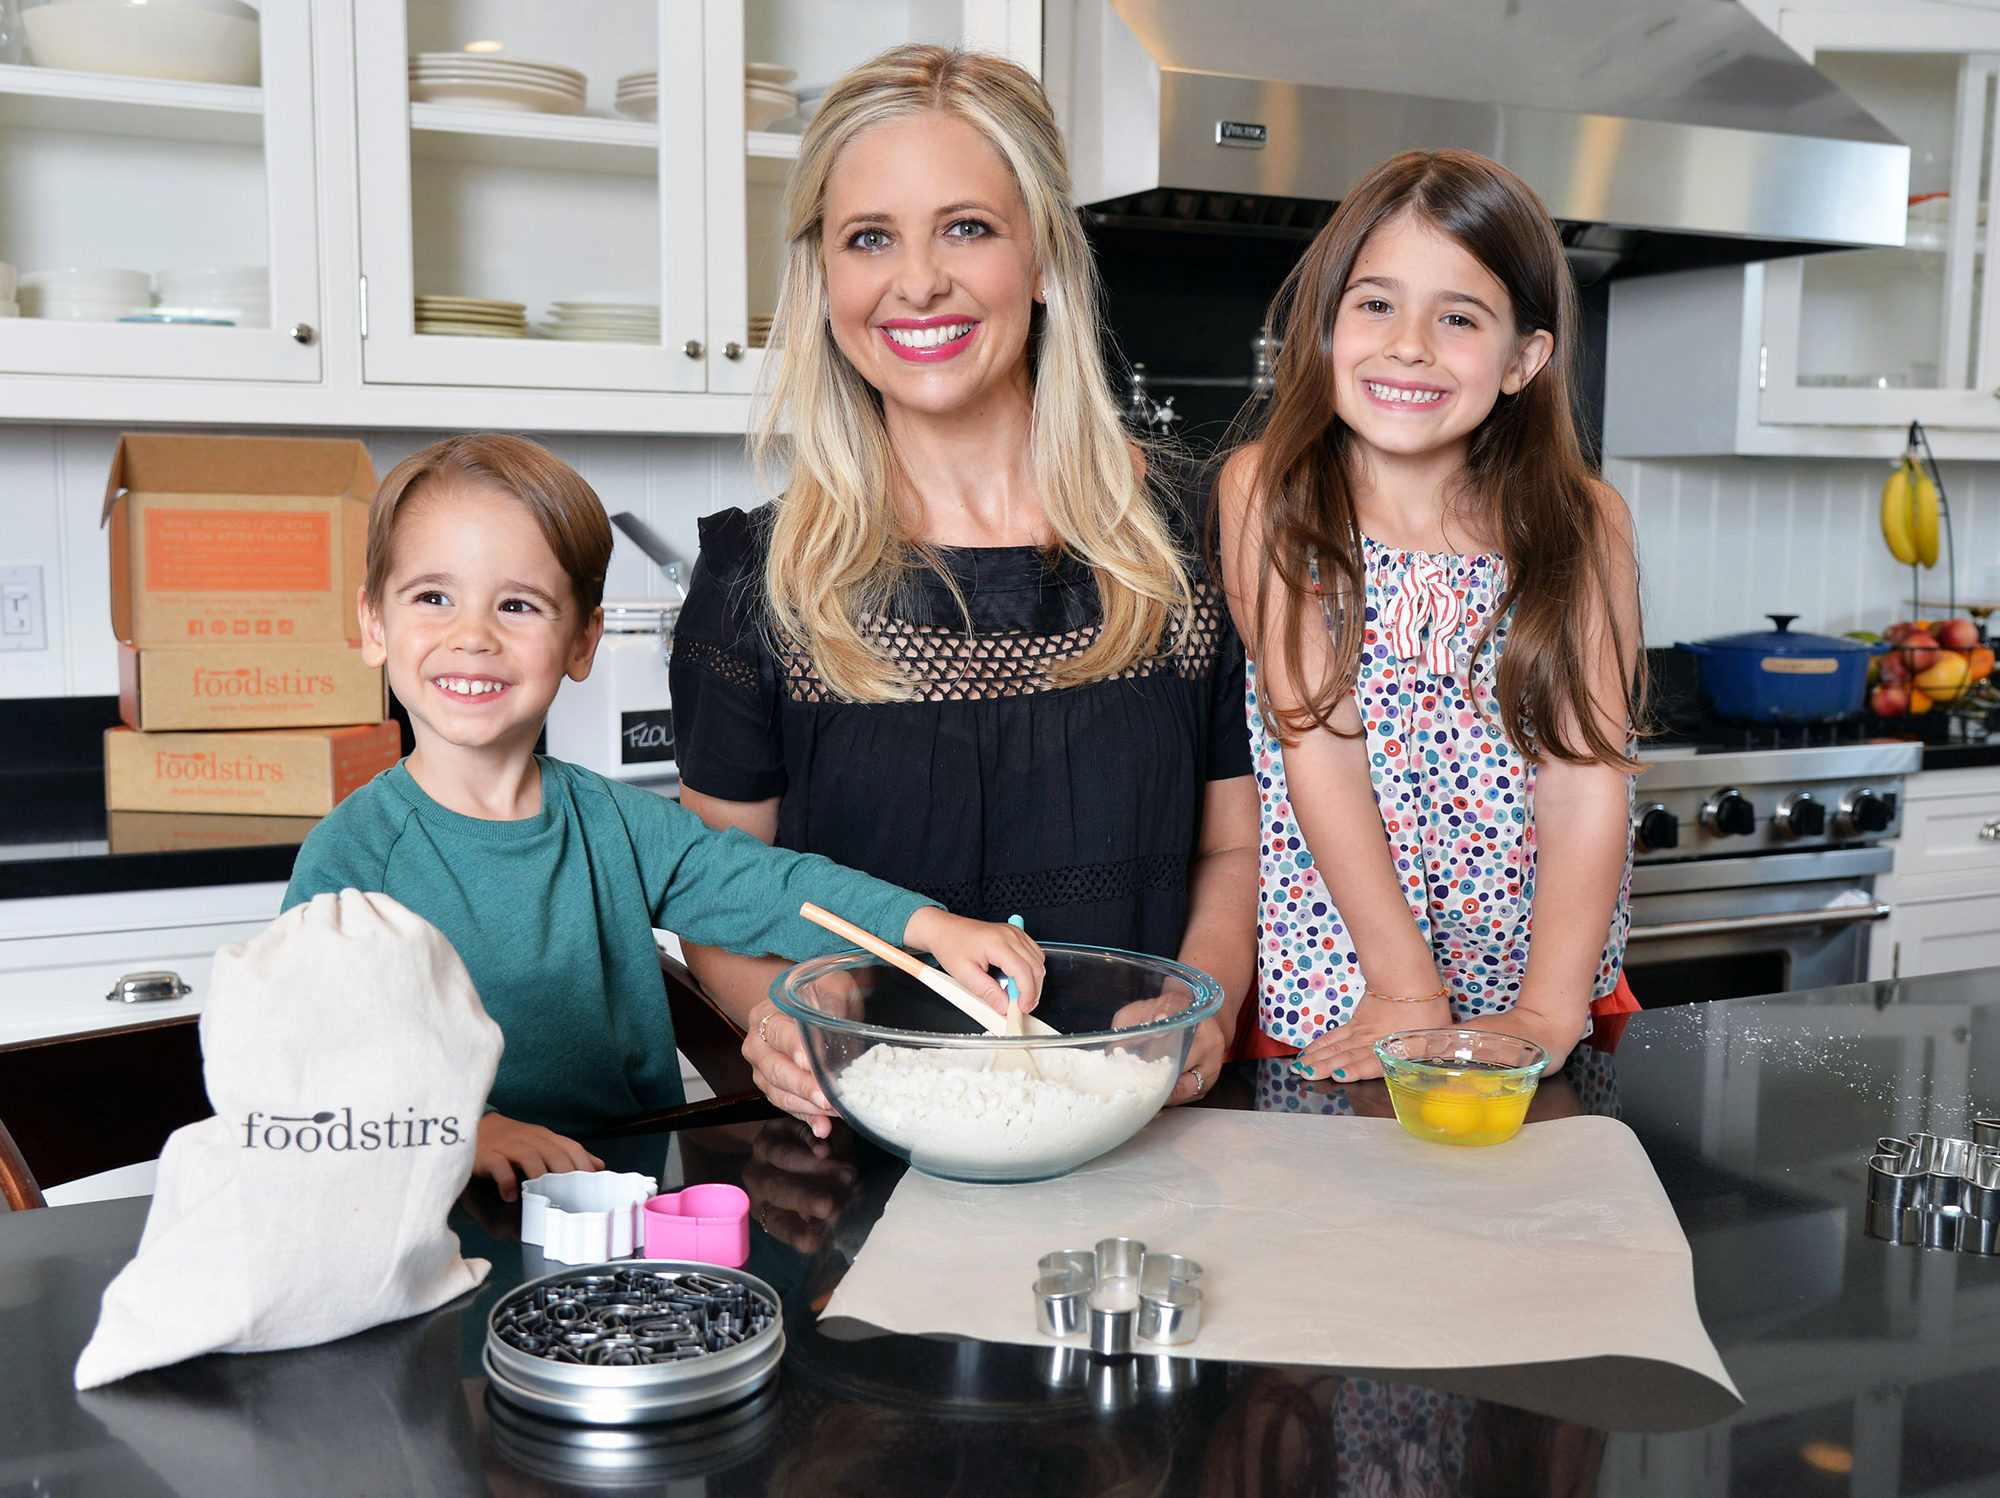 Sarah Michelle Gellar Loves Getting to 'Experience the World' With Her 2 Kids: 'Pretty Spectacular'